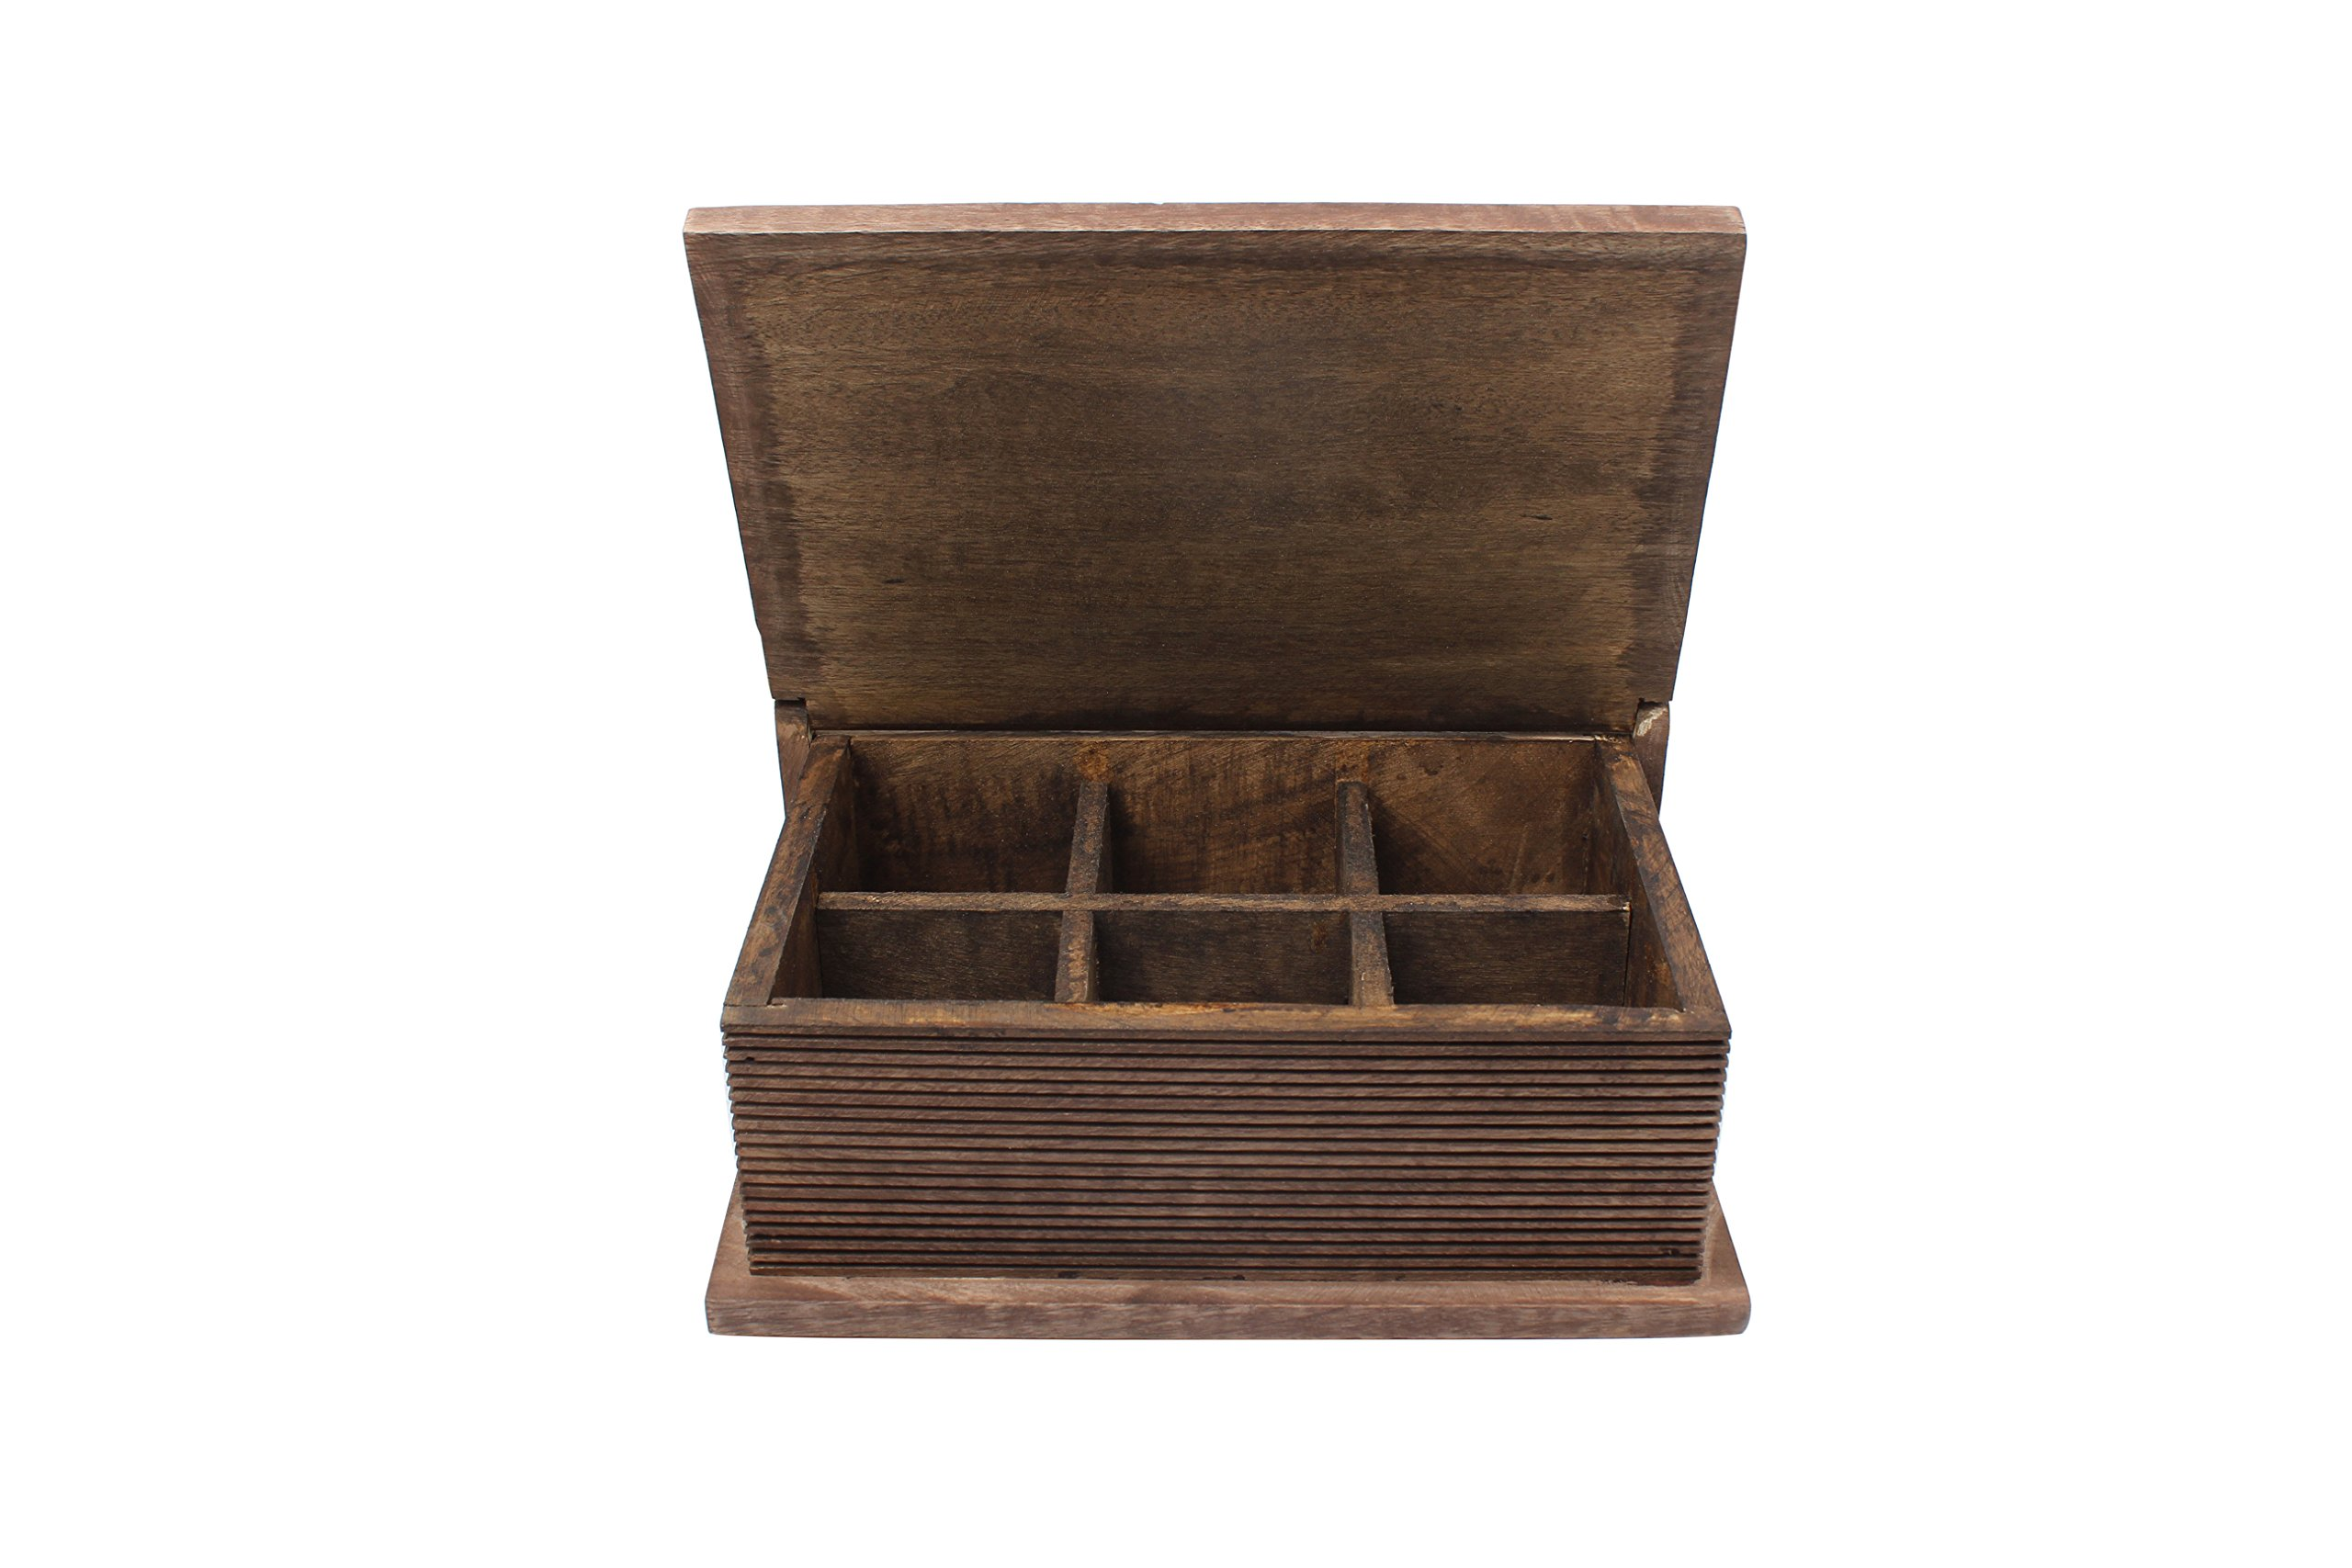 storeindya, Tea Boxes Wooden/Tea Box Organizer/Tea Box Holder/Tea Storage Box/Tea Chest Boxes/Wood Tea Box Handmade Wooden Teabags Holder Chest Organizer (Dark Eve Collection) by storeindya (Image #4)